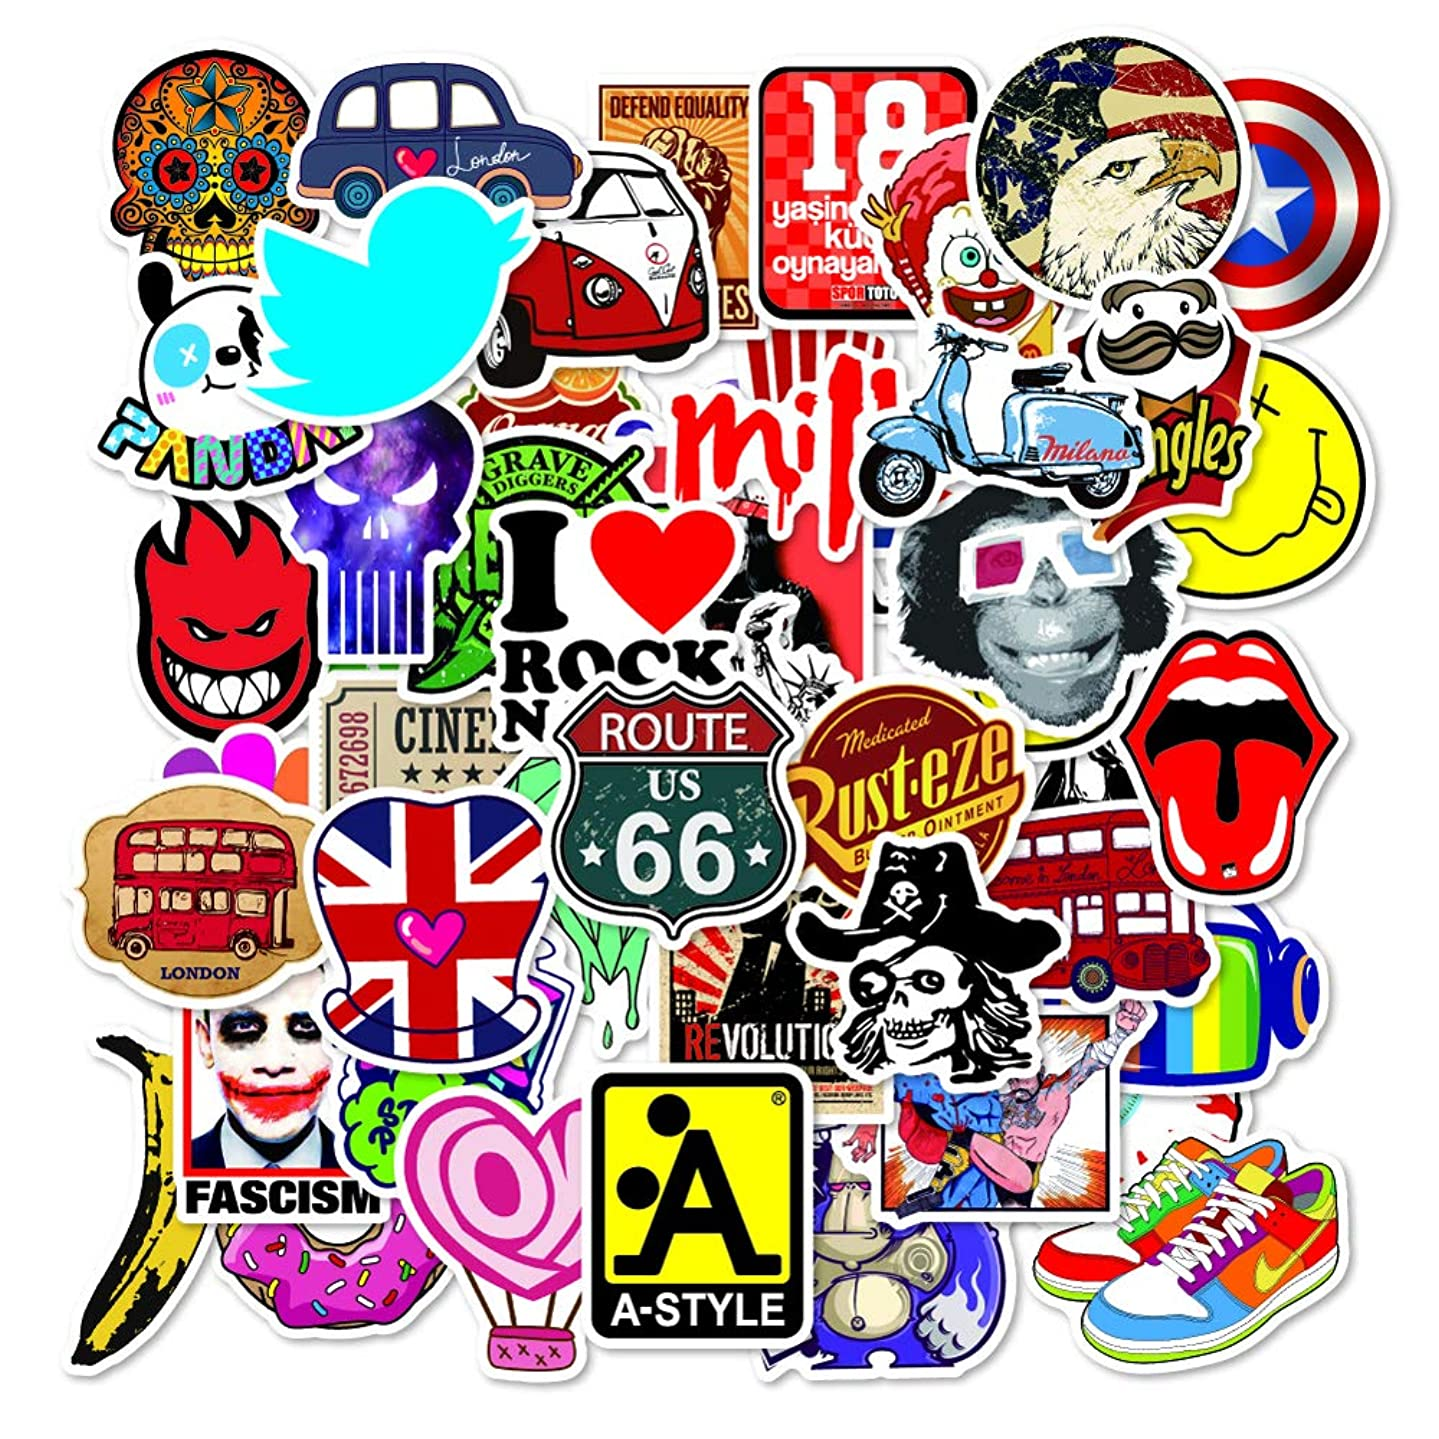 Awesome Sticker Pack [100pcs] Amazing Sticker Decals Waterproof Vinyls for Laptop Cars Motorcycle Snowboard Skateboard Luggage PC Computer Phone Hippe Helmet Kids,Teens,Adults-No duplicated Sticker E